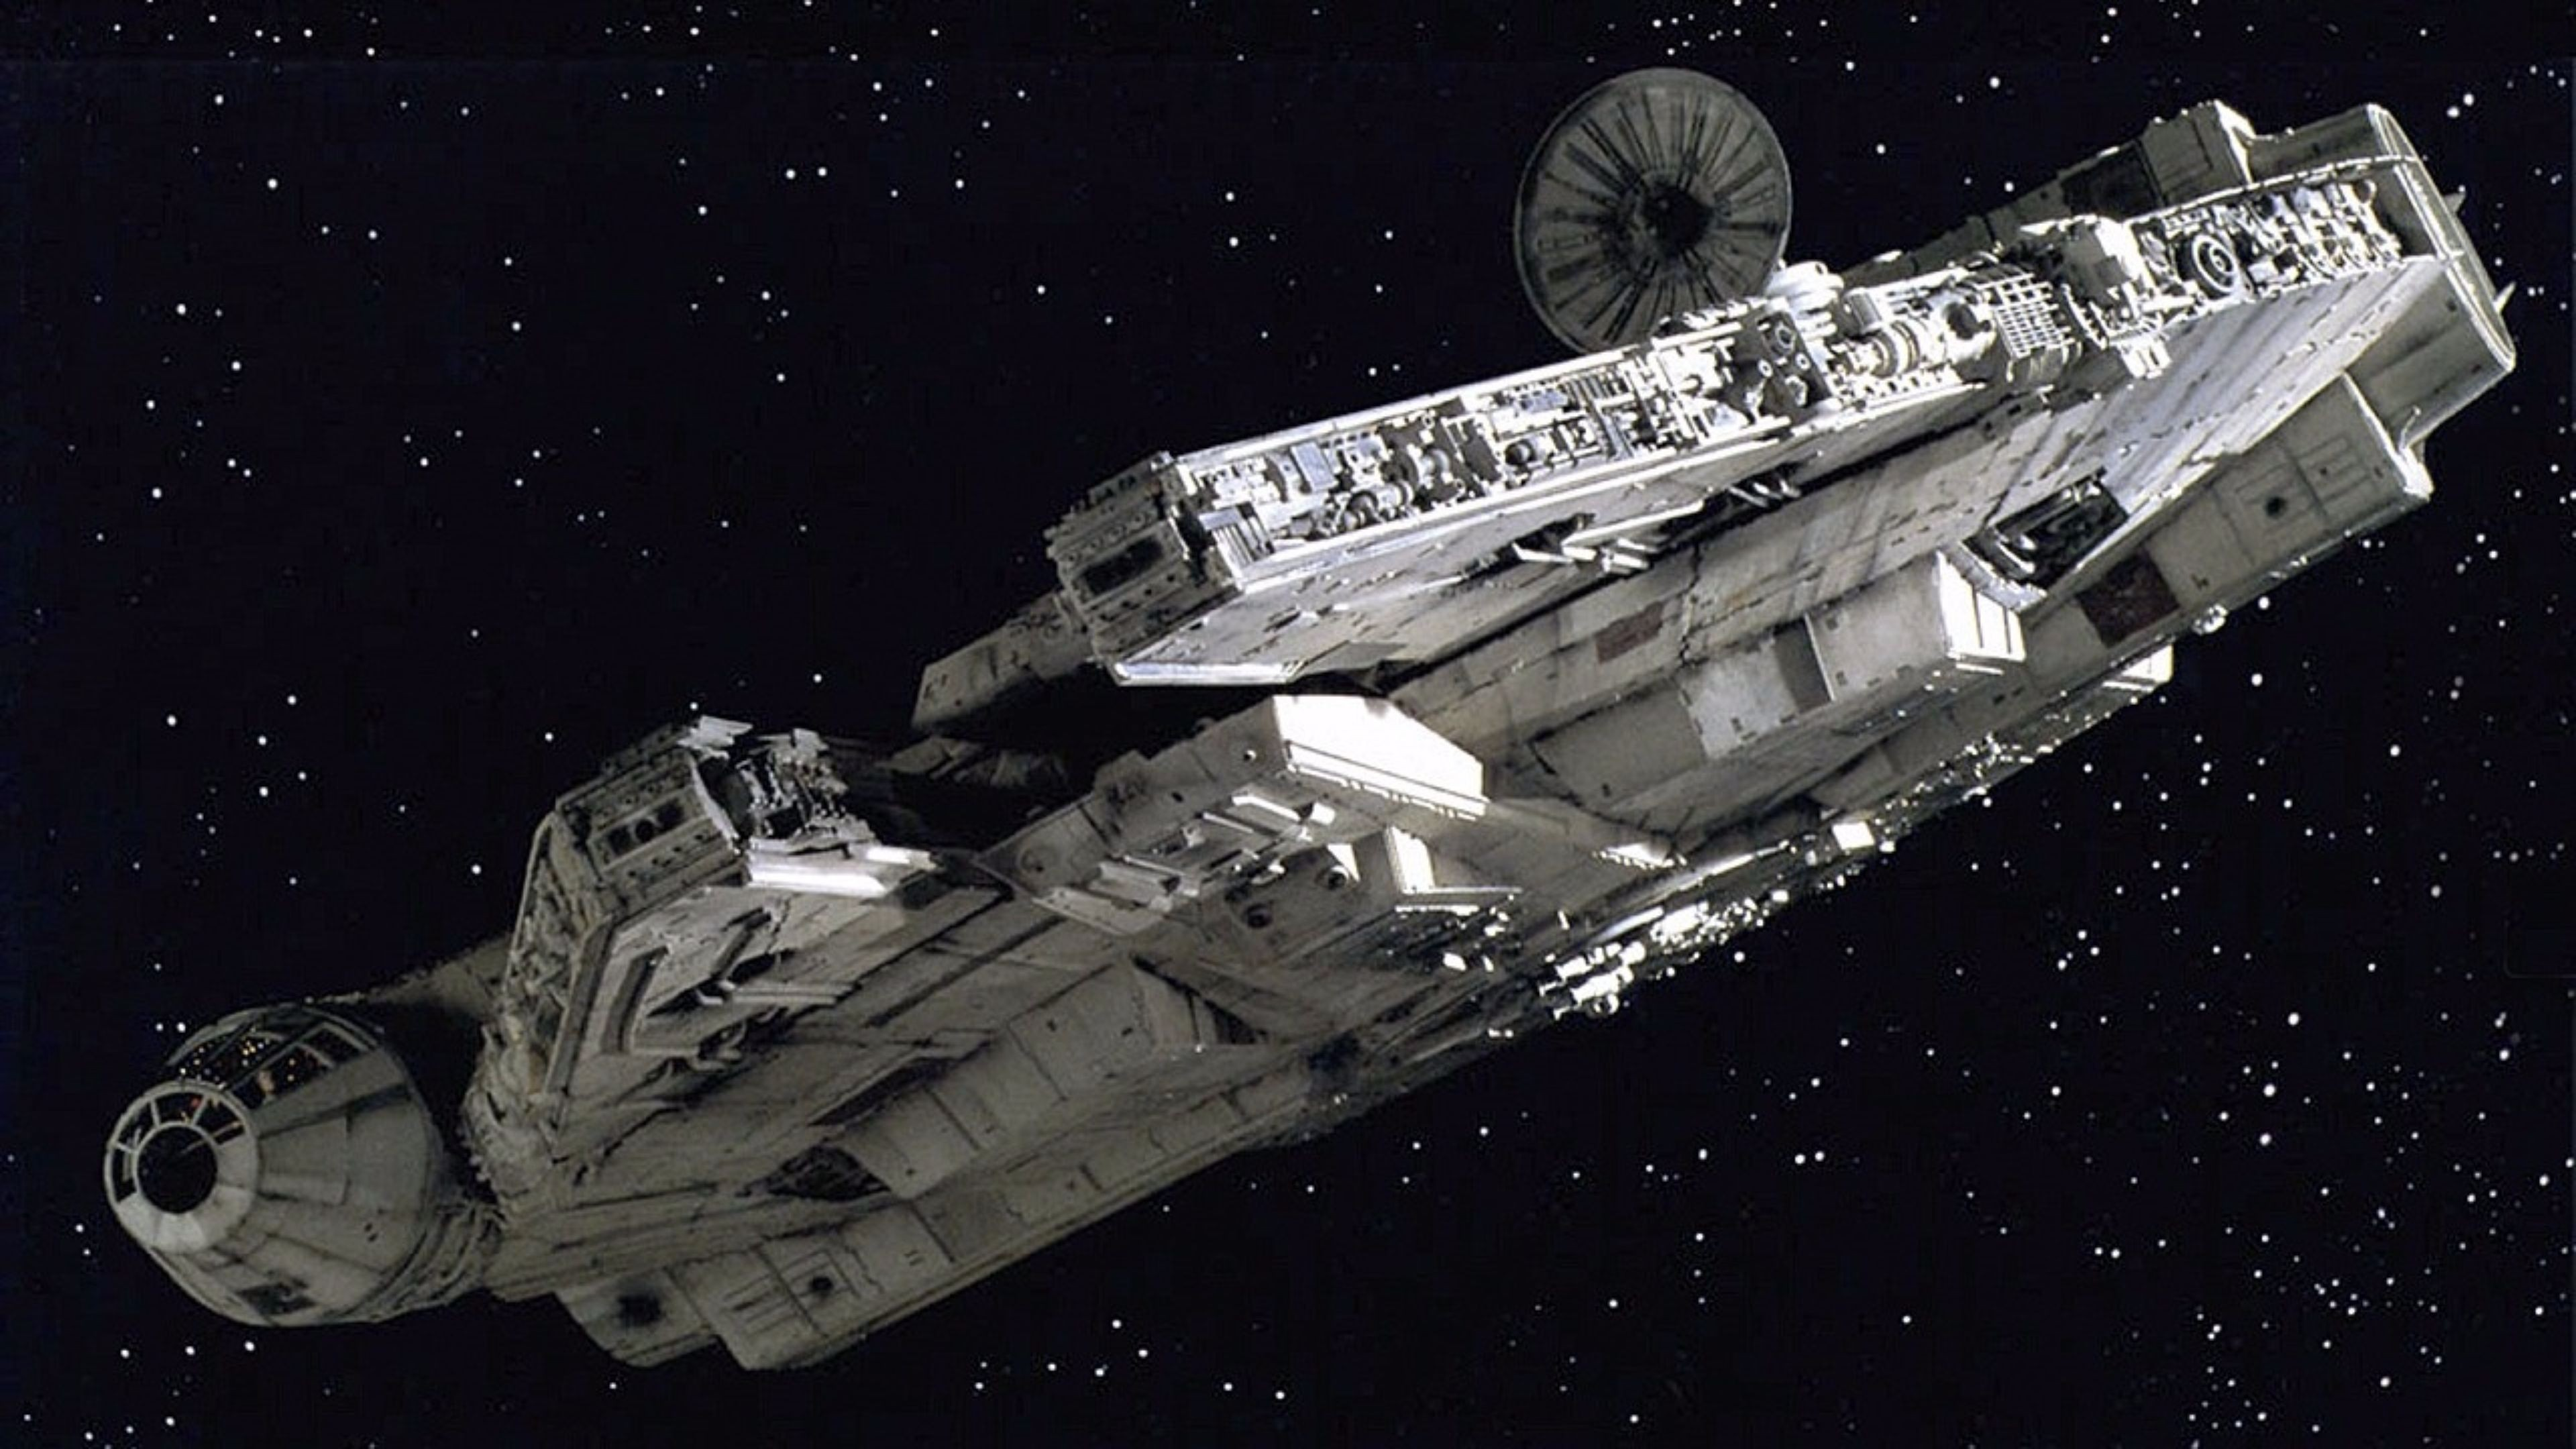 Star Wars 4k Wallpaper Download Free Awesome Wallpapers For